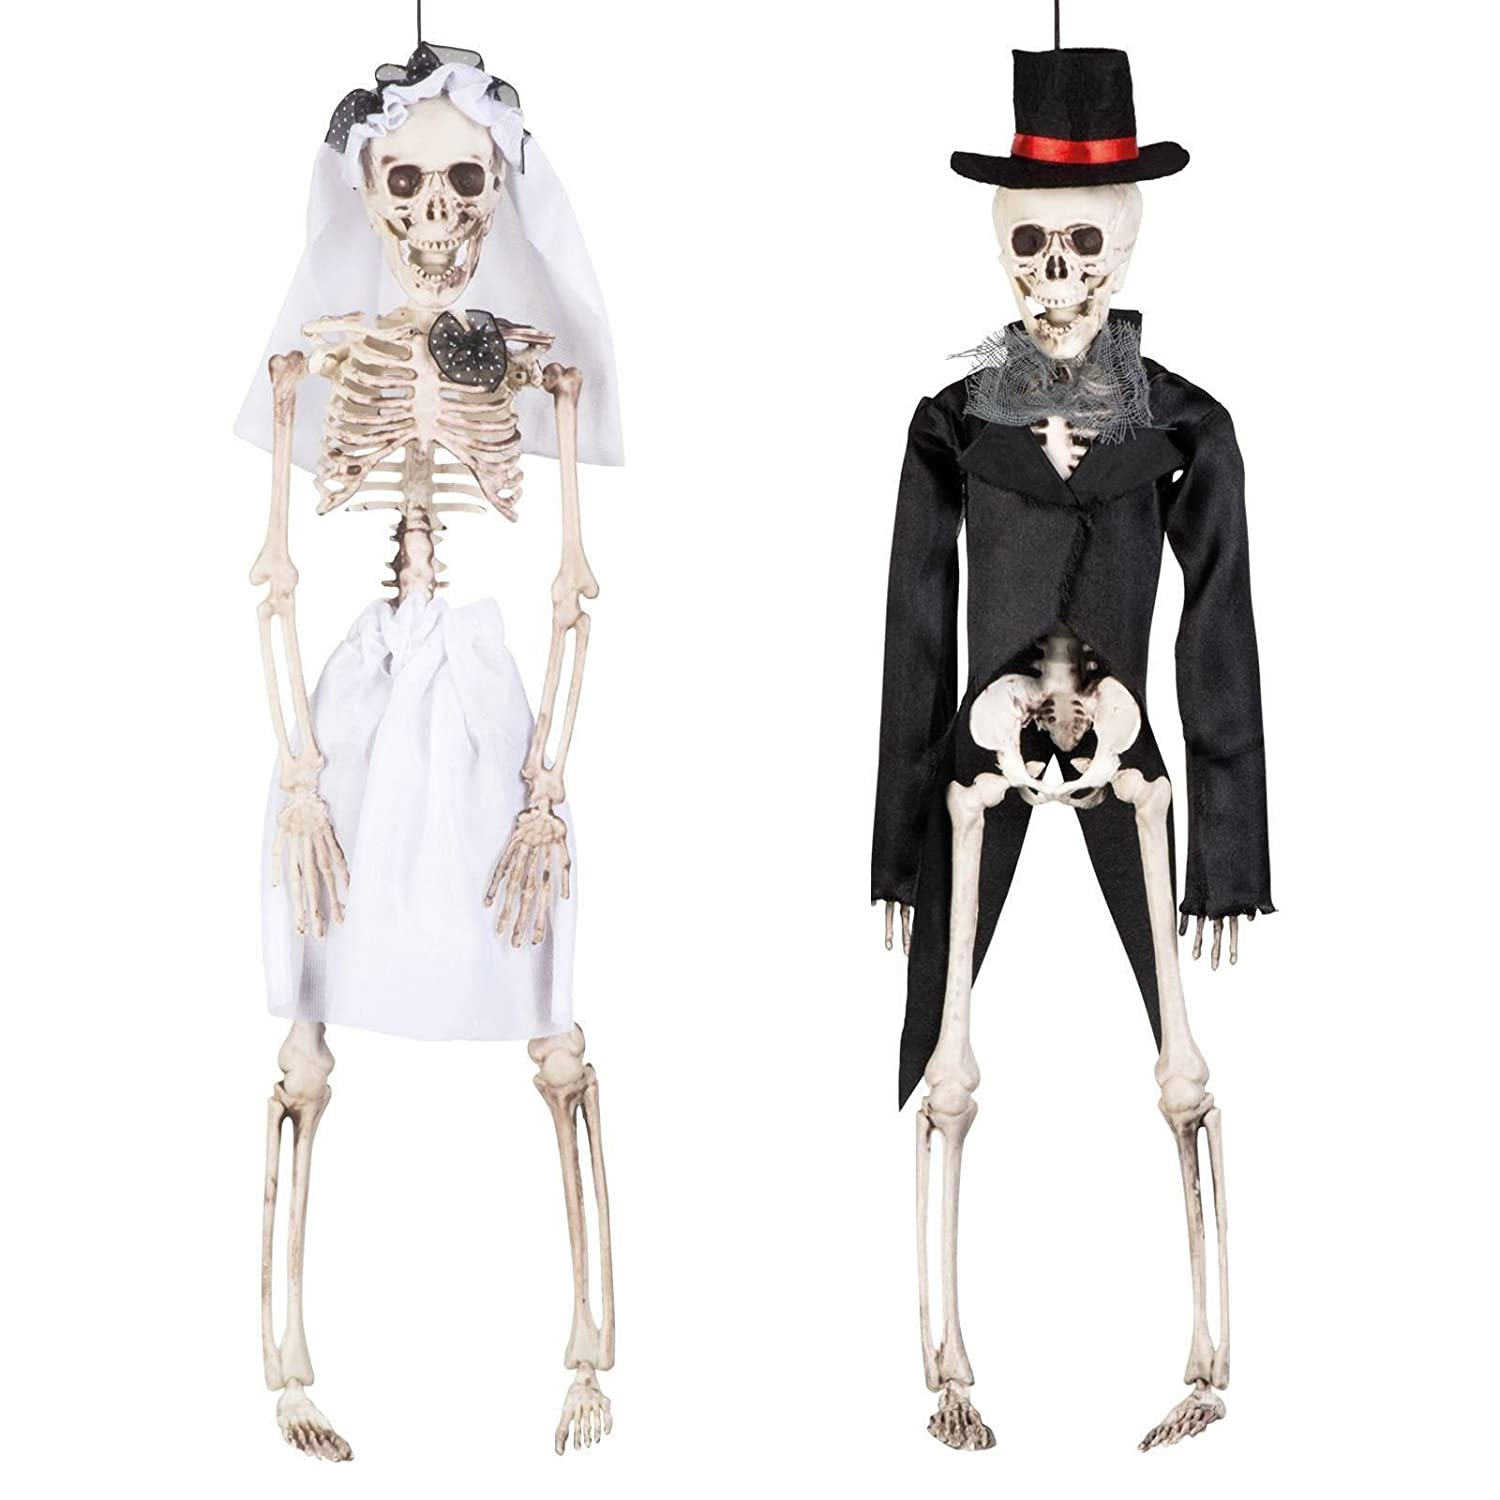 43cm Bride Groom Skeleton Hanging Halloween Decoration Couple Wedding Day of the Dead Plastic Man and Woman Prop Model Shop Front Decor Fancy Dress VIP